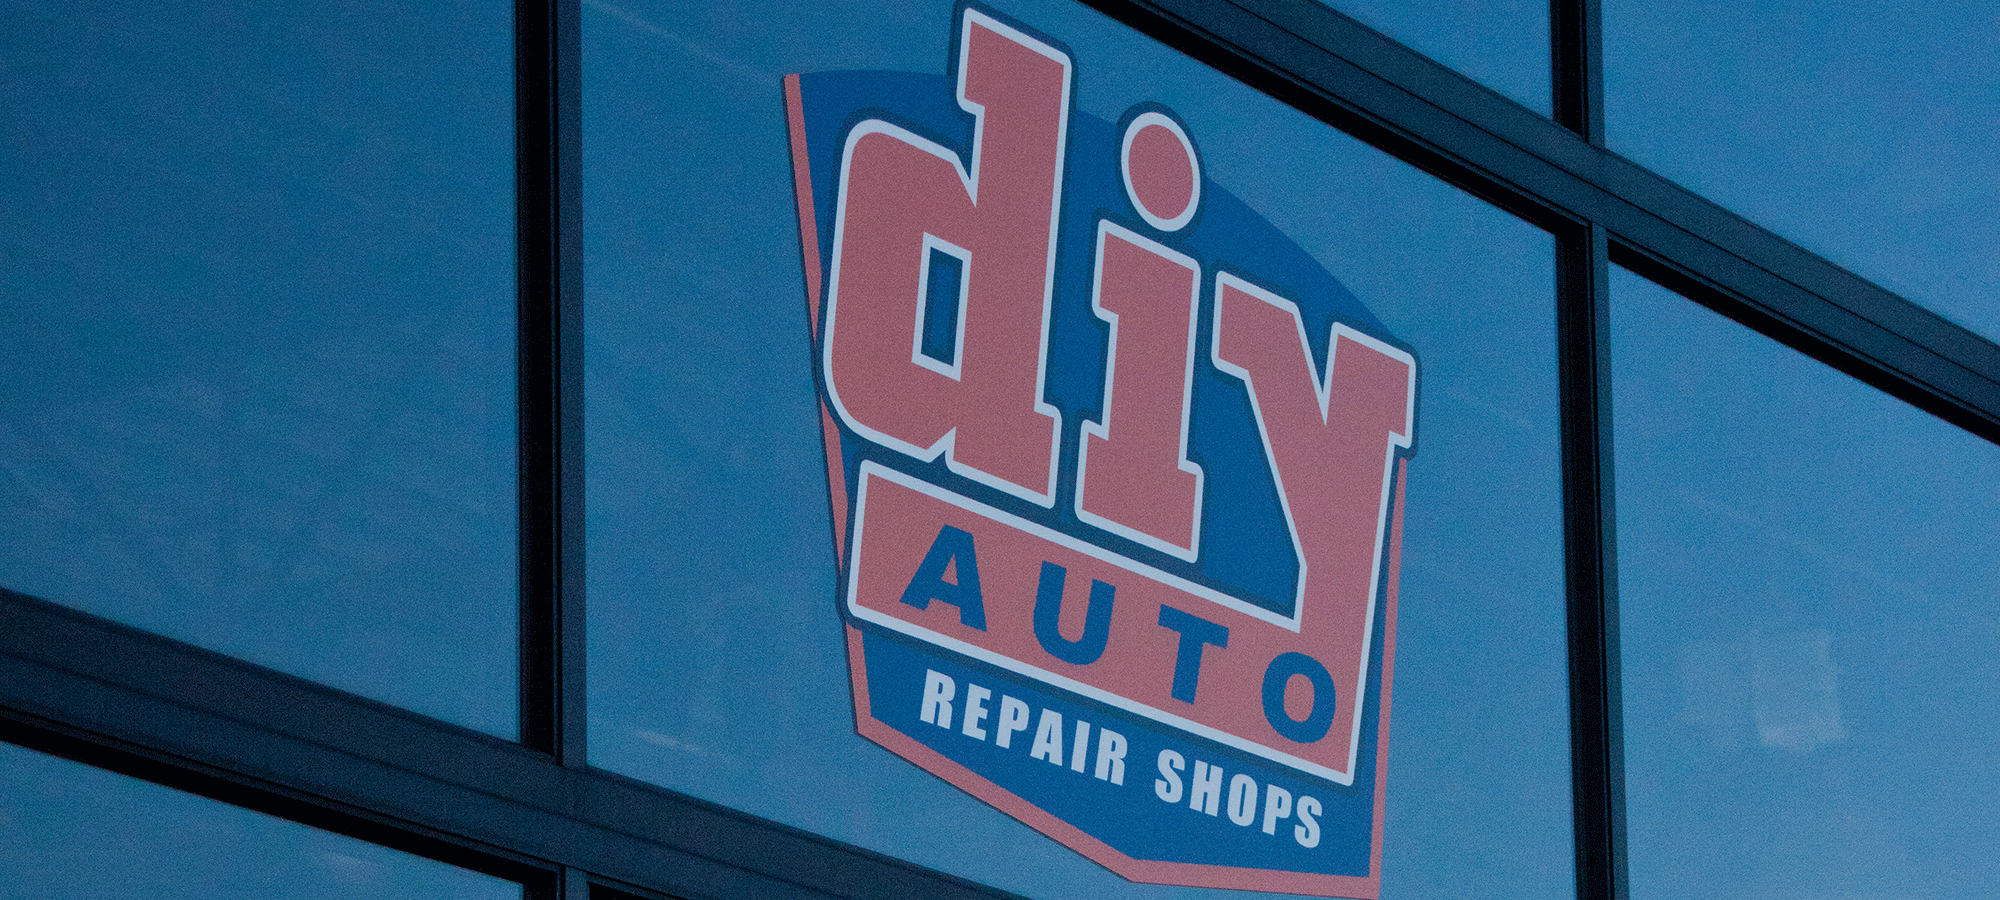 Diy auto repair shops equipped self service garage bays save even more money solutioingenieria Image collections